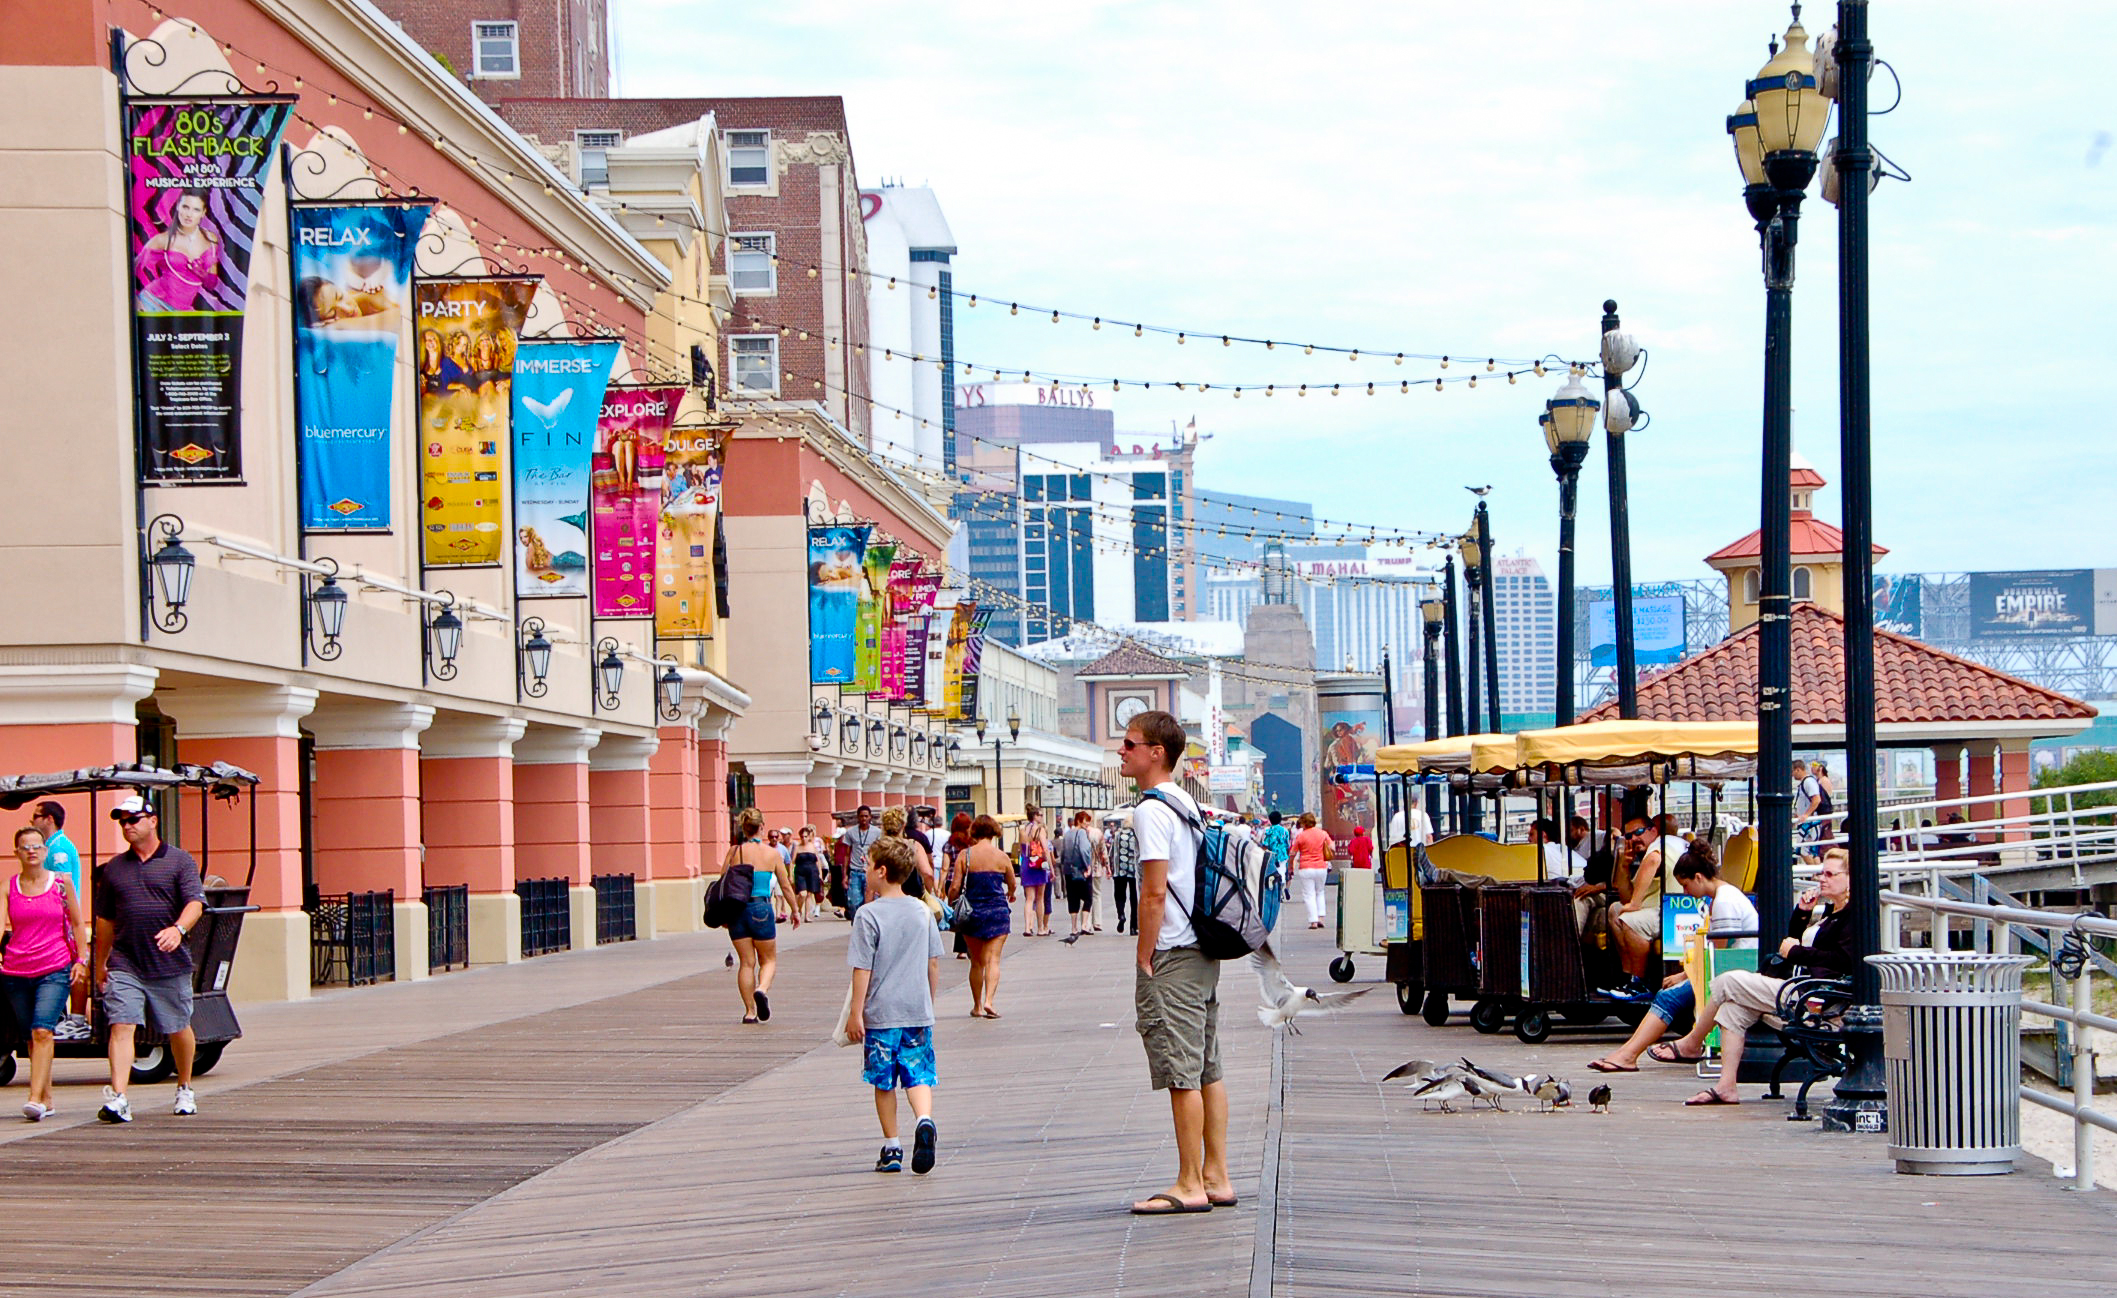 What Are The Famous Places In Atlantic City?